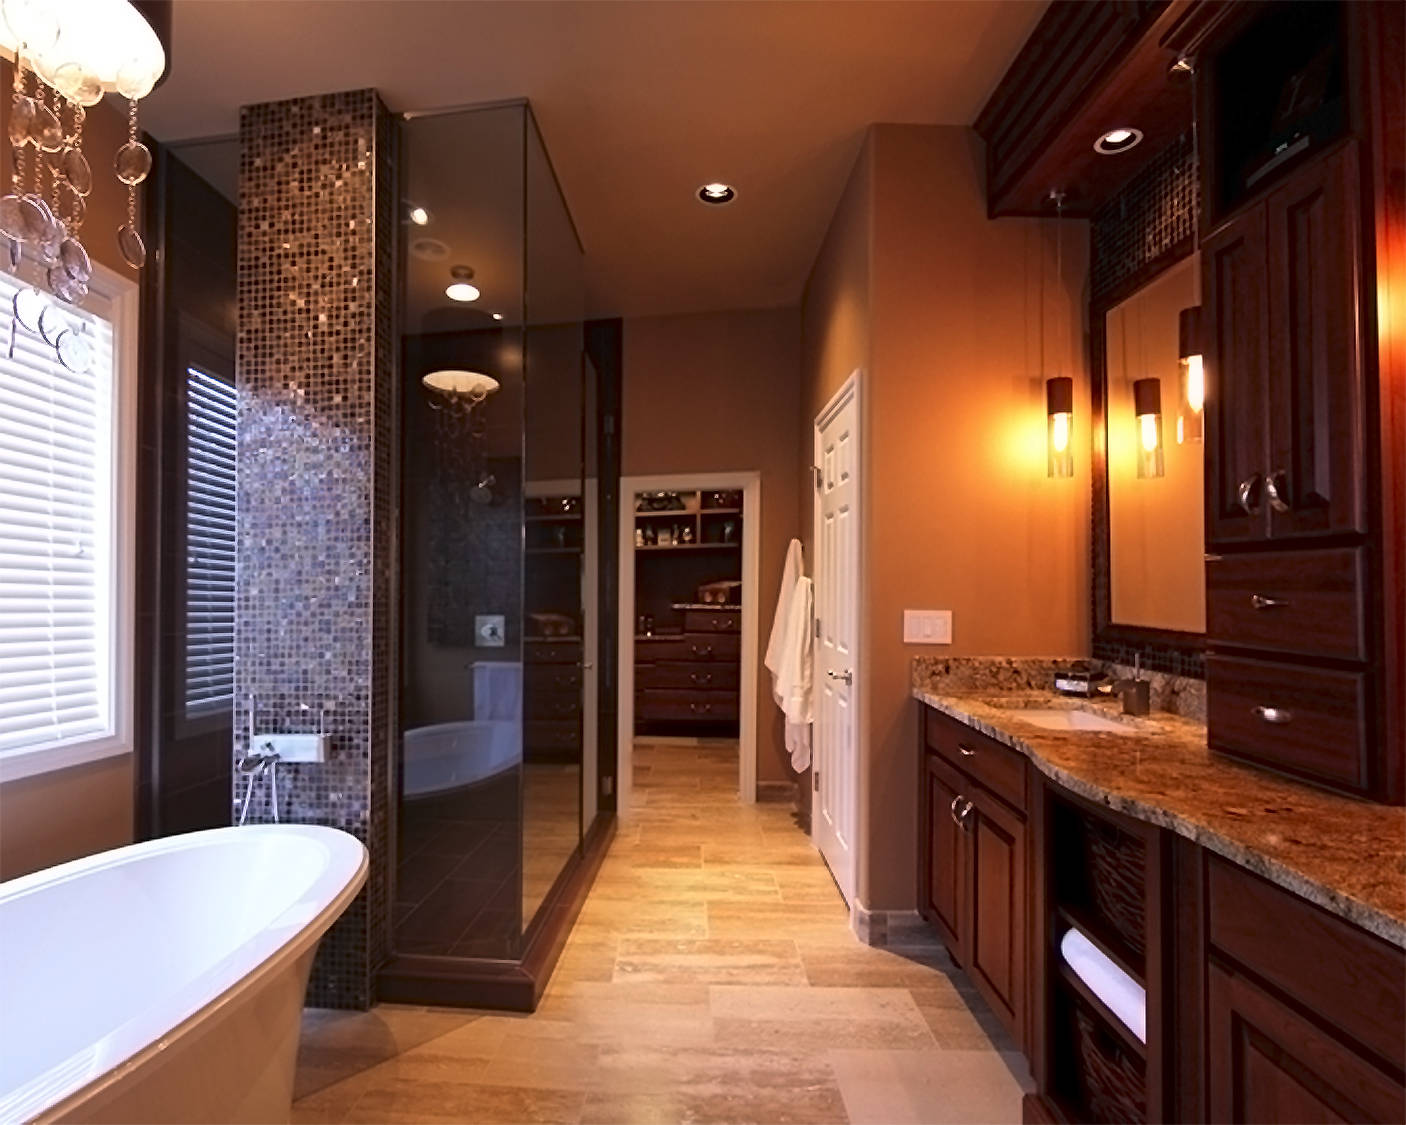 25 best bathroom remodeling ideas and inspiration for Home remodeling ideas